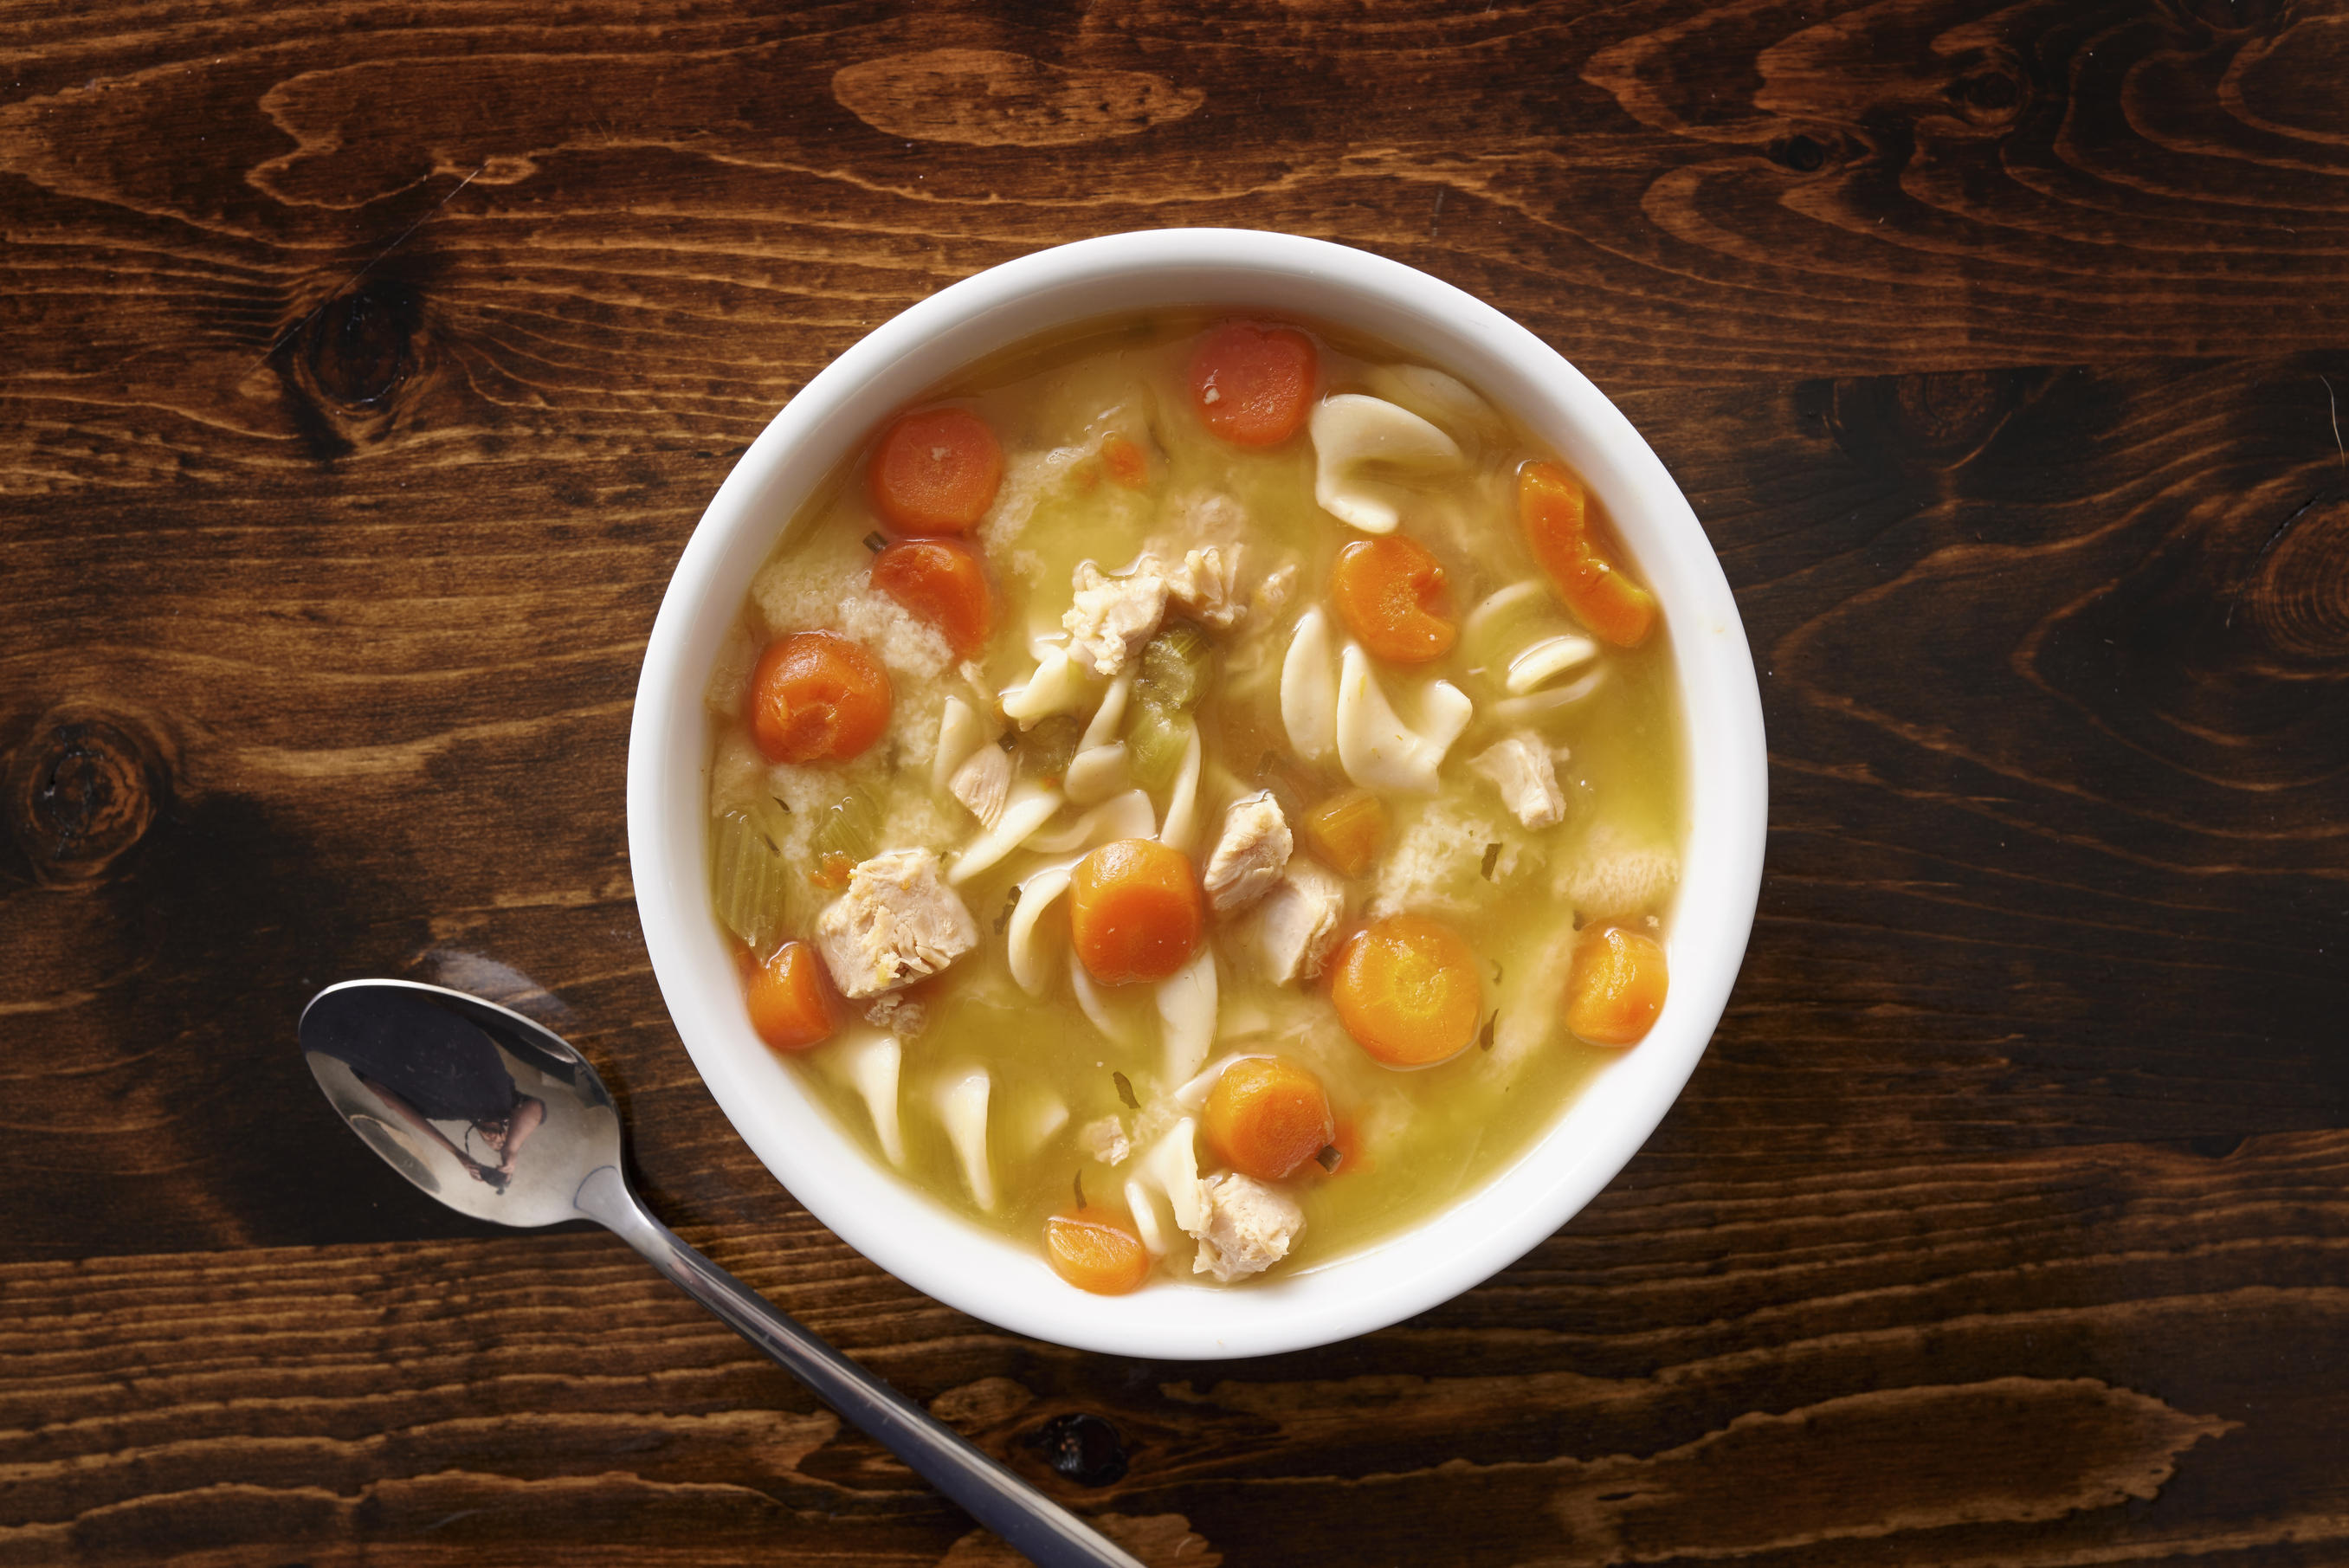 Chicken noodle soup on a wooden table